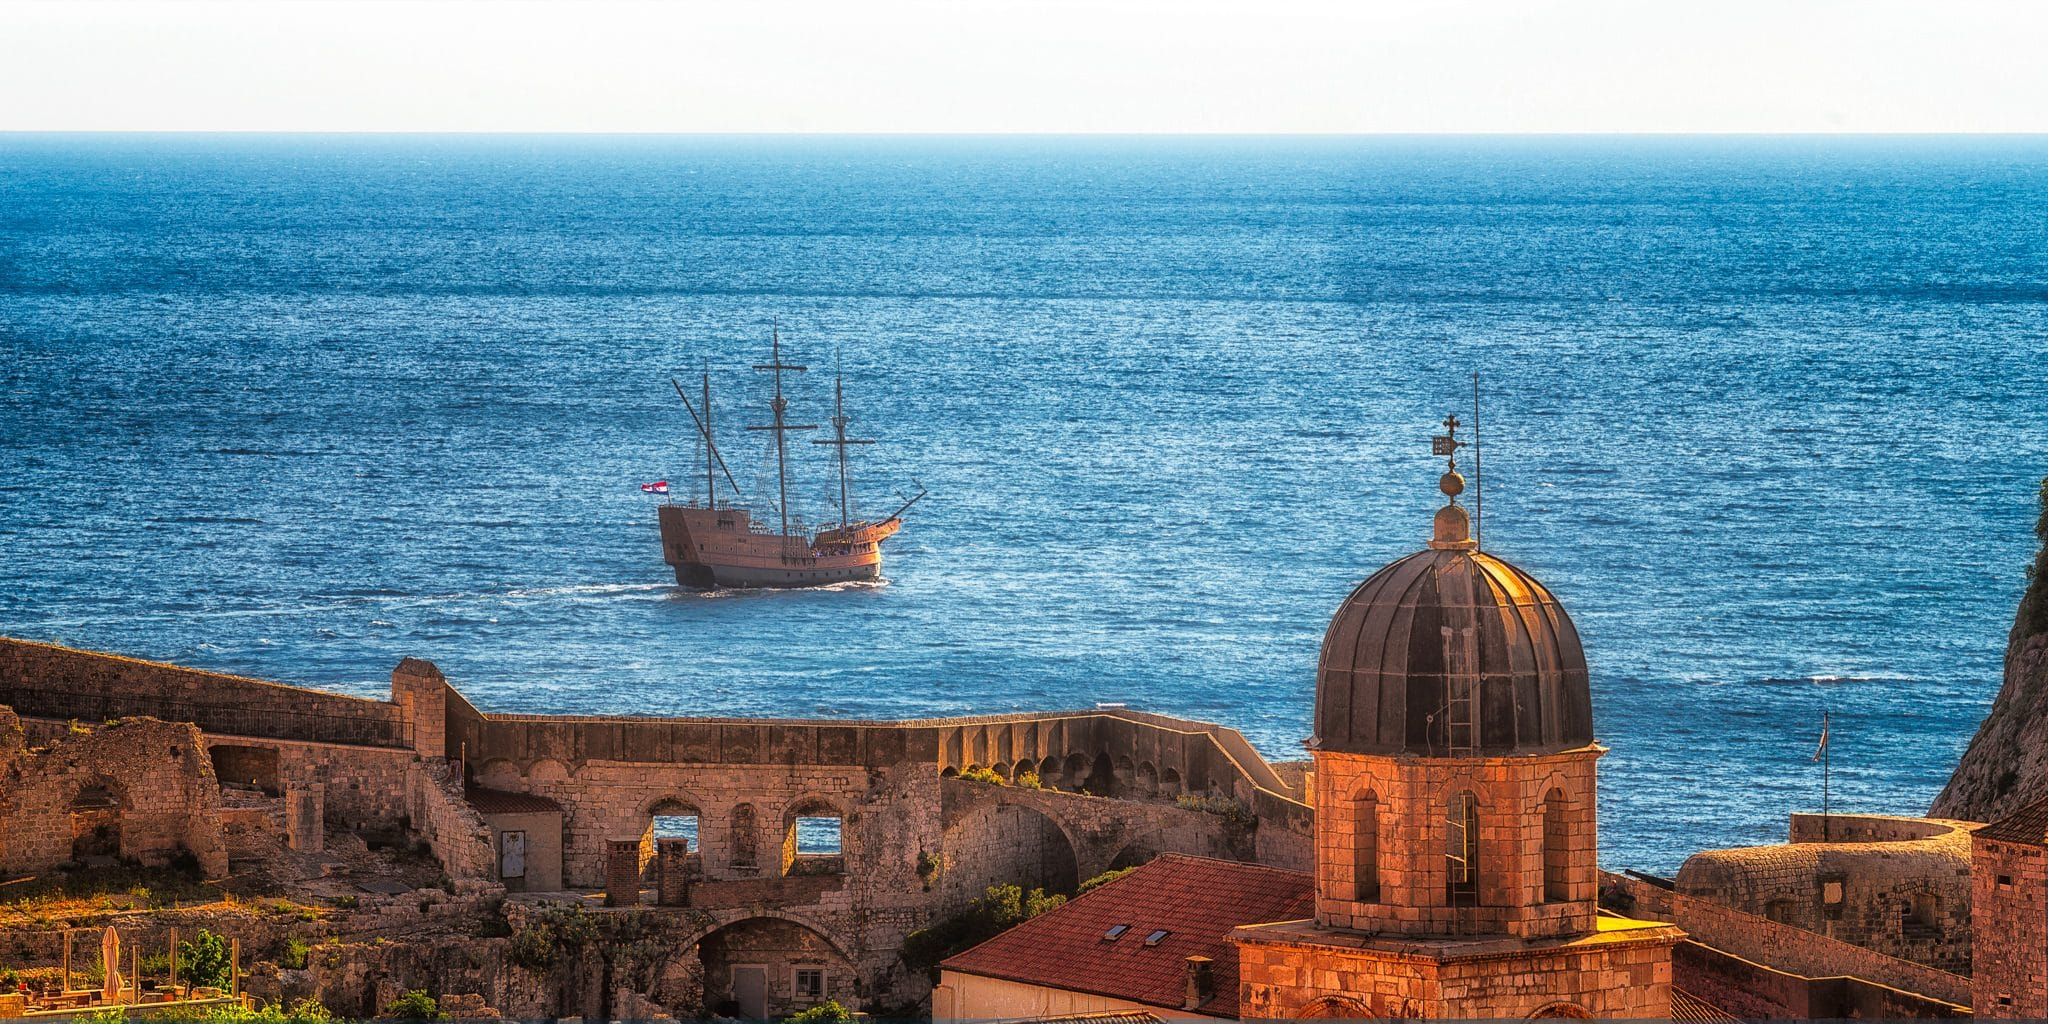 Dubrovnik in Croatia with an old-style boat passing it on the Mediterranean See. The view is from the walls of Dubrovnik.